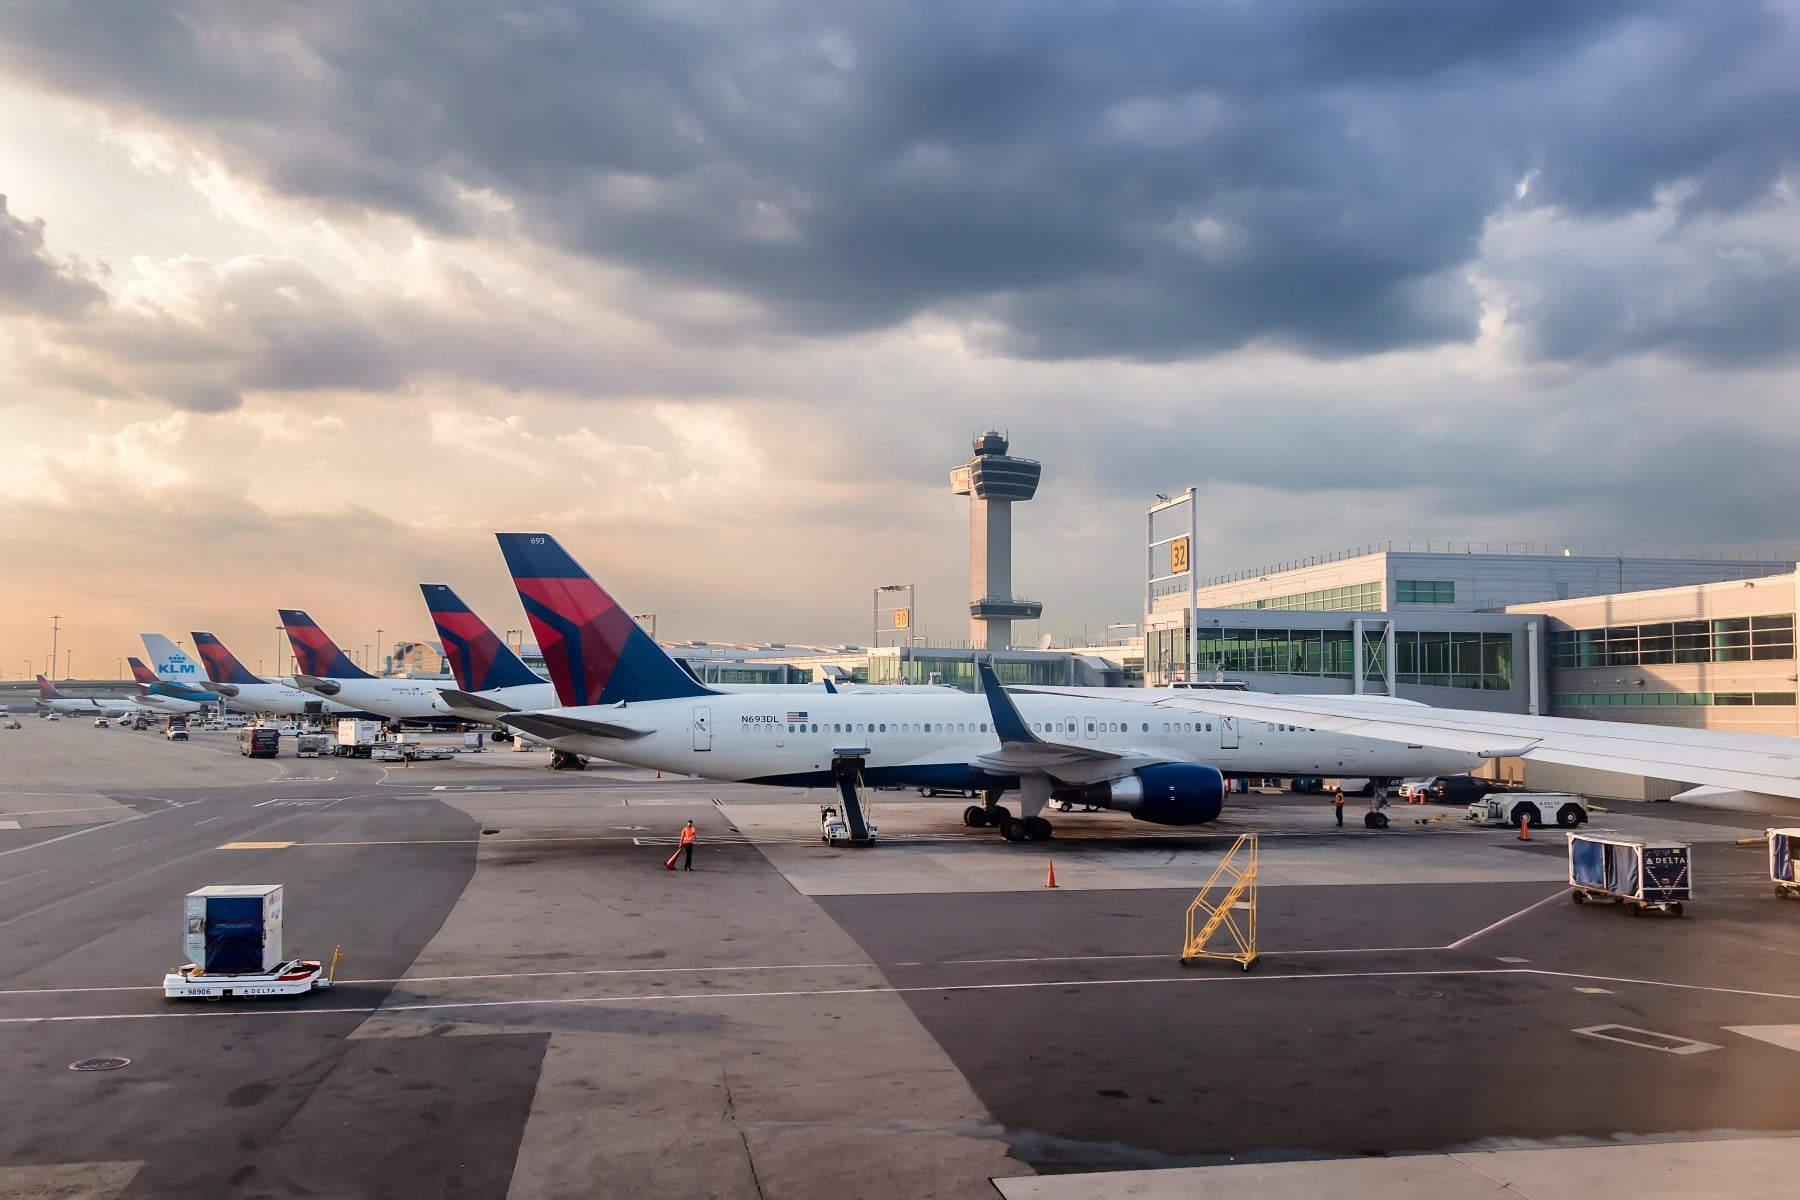 Is the Gold Delta SkyMiles Business Card Annual Fee Worth It? With Money-Saving Travel Perks, It's a Great Fit for Delta Flyers